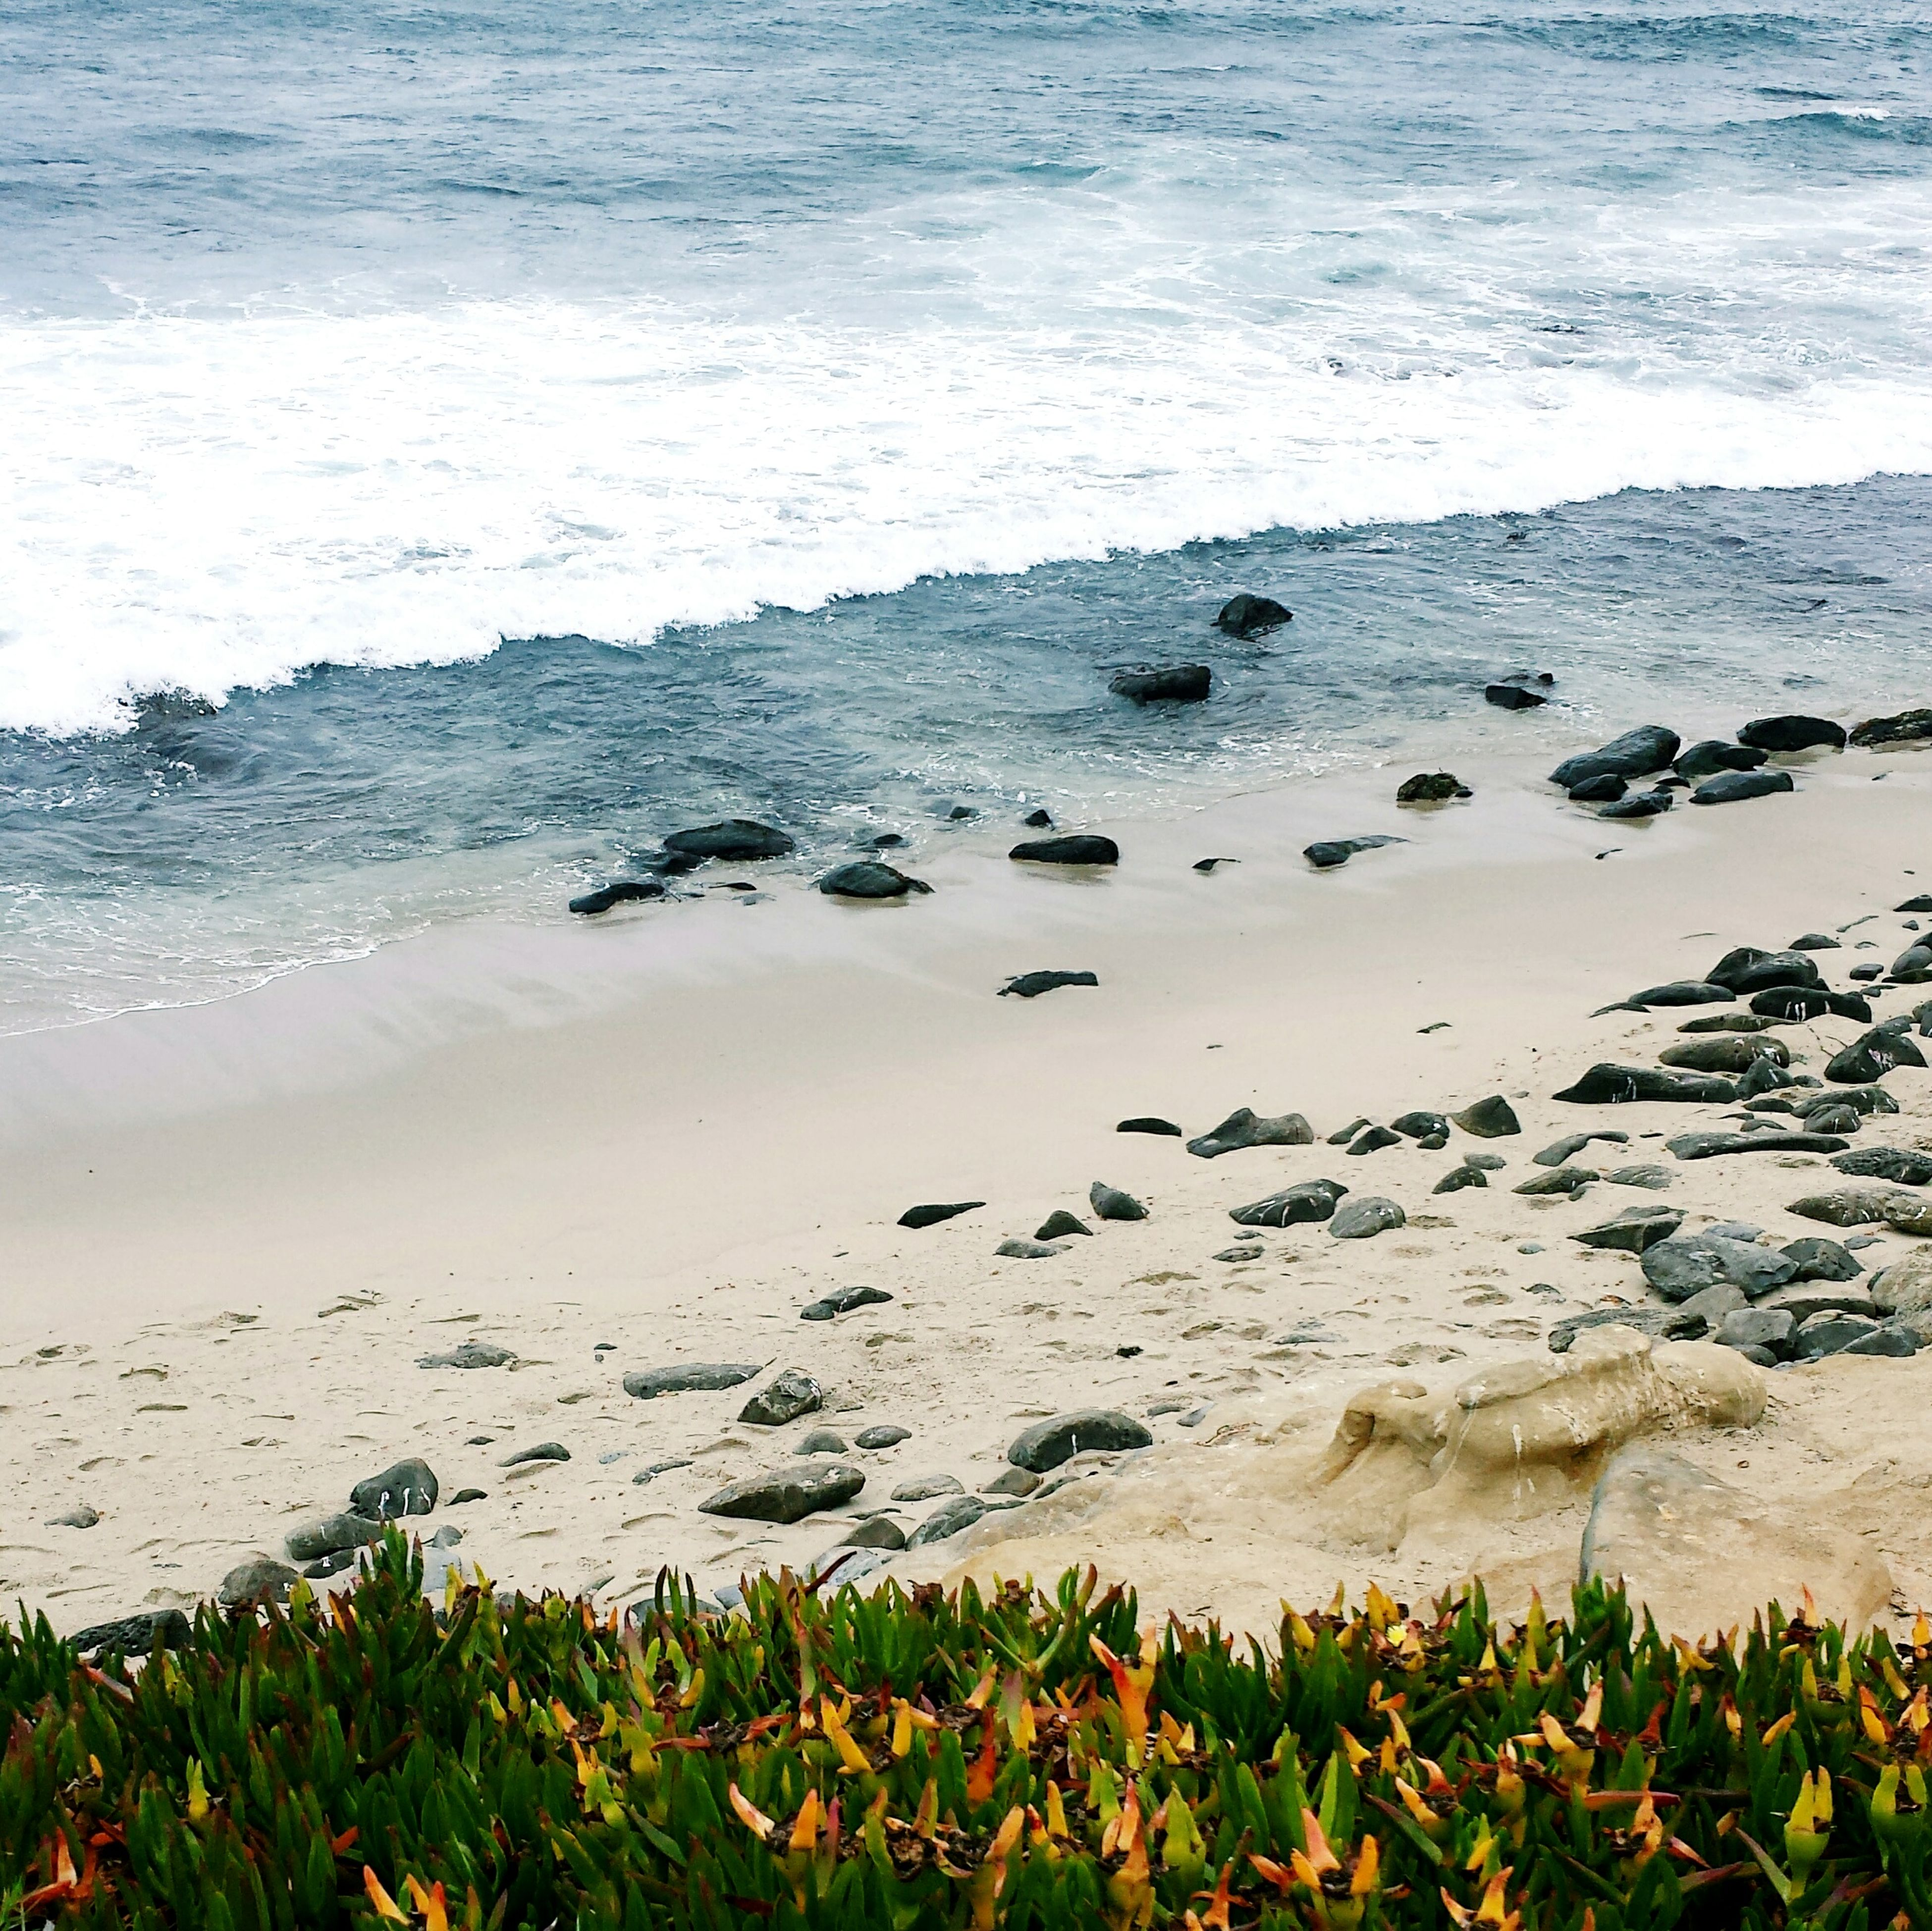 sea, water, beach, shore, tranquility, beauty in nature, tranquil scene, horizon over water, nature, scenics, wave, sand, coastline, grass, surf, plant, high angle view, day, idyllic, no people